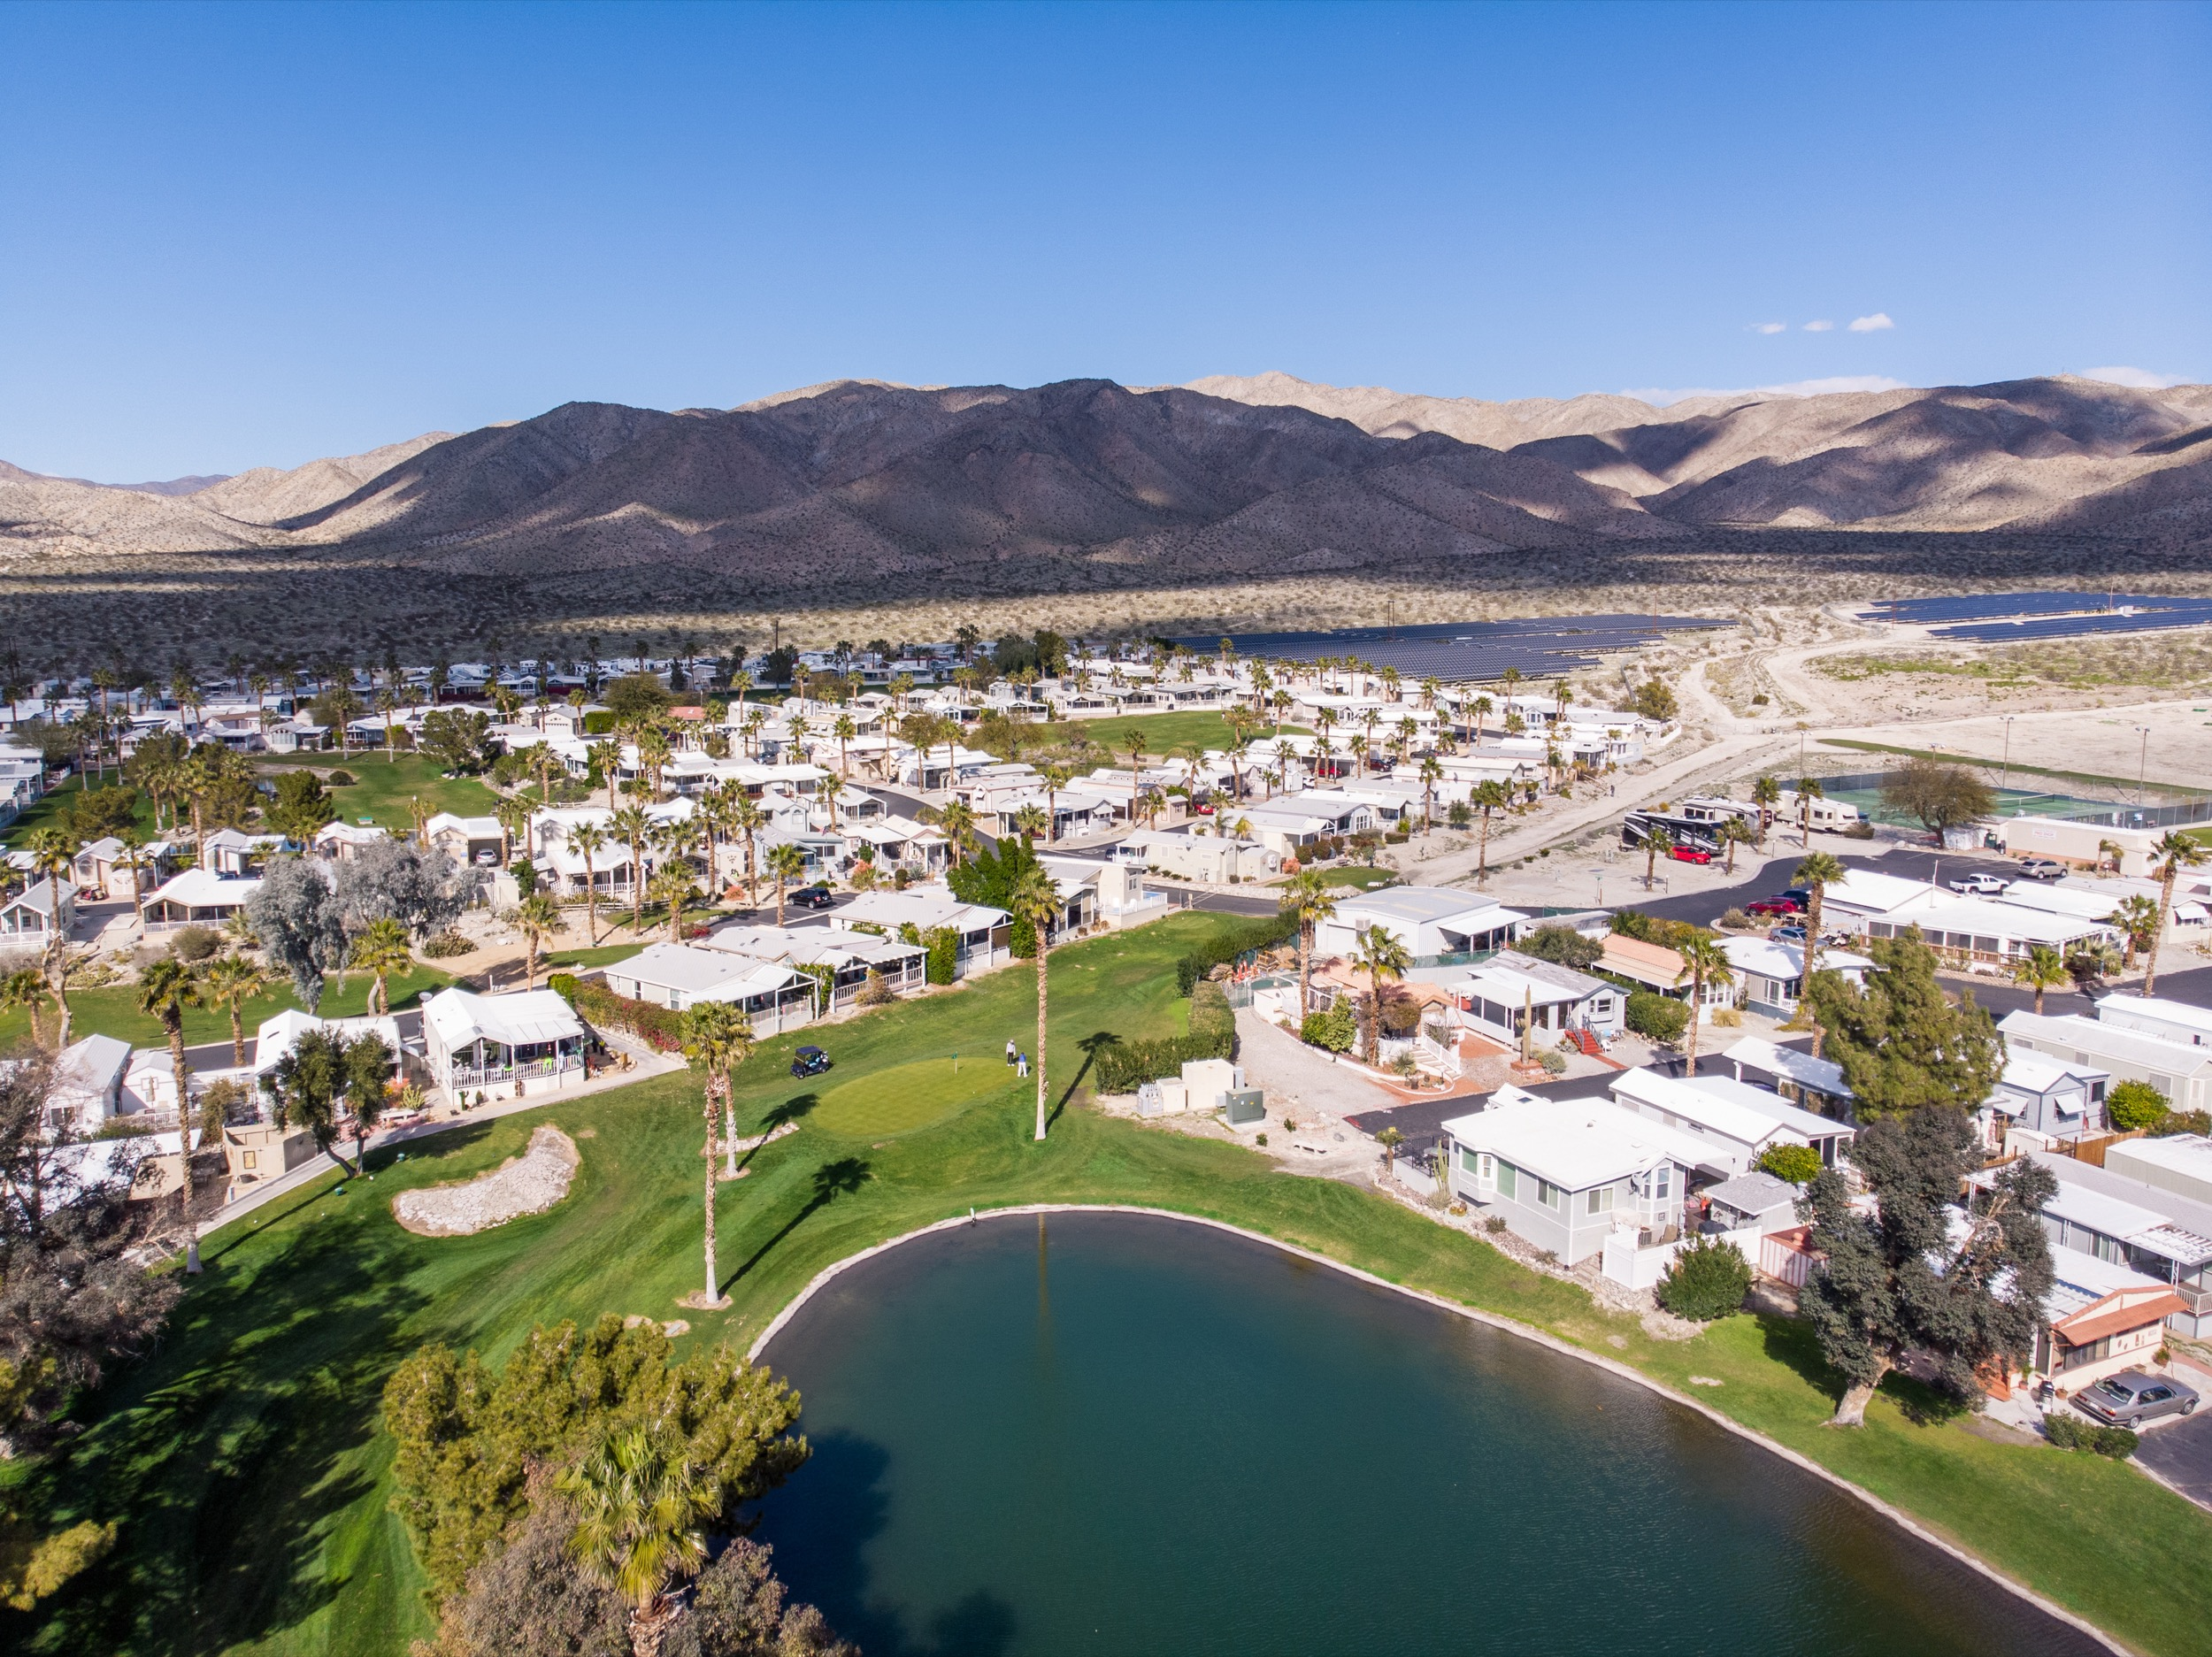 RESORT AMENITIES - HOT MINERAL POOLS AND SPASCENTRAL CLUBHOUSE LOCATIONPICKLEBALL AND TENNIS COURTSGOLF COURSE, DRIVING RANGE, AND PRO SHOPFITNESS ROOM AND SAUNASDOG PARKSWALKING TRAILSHORSESHOES AND BOCCESOCIAL EVENTS SCHEDULED YEAR-ROUND